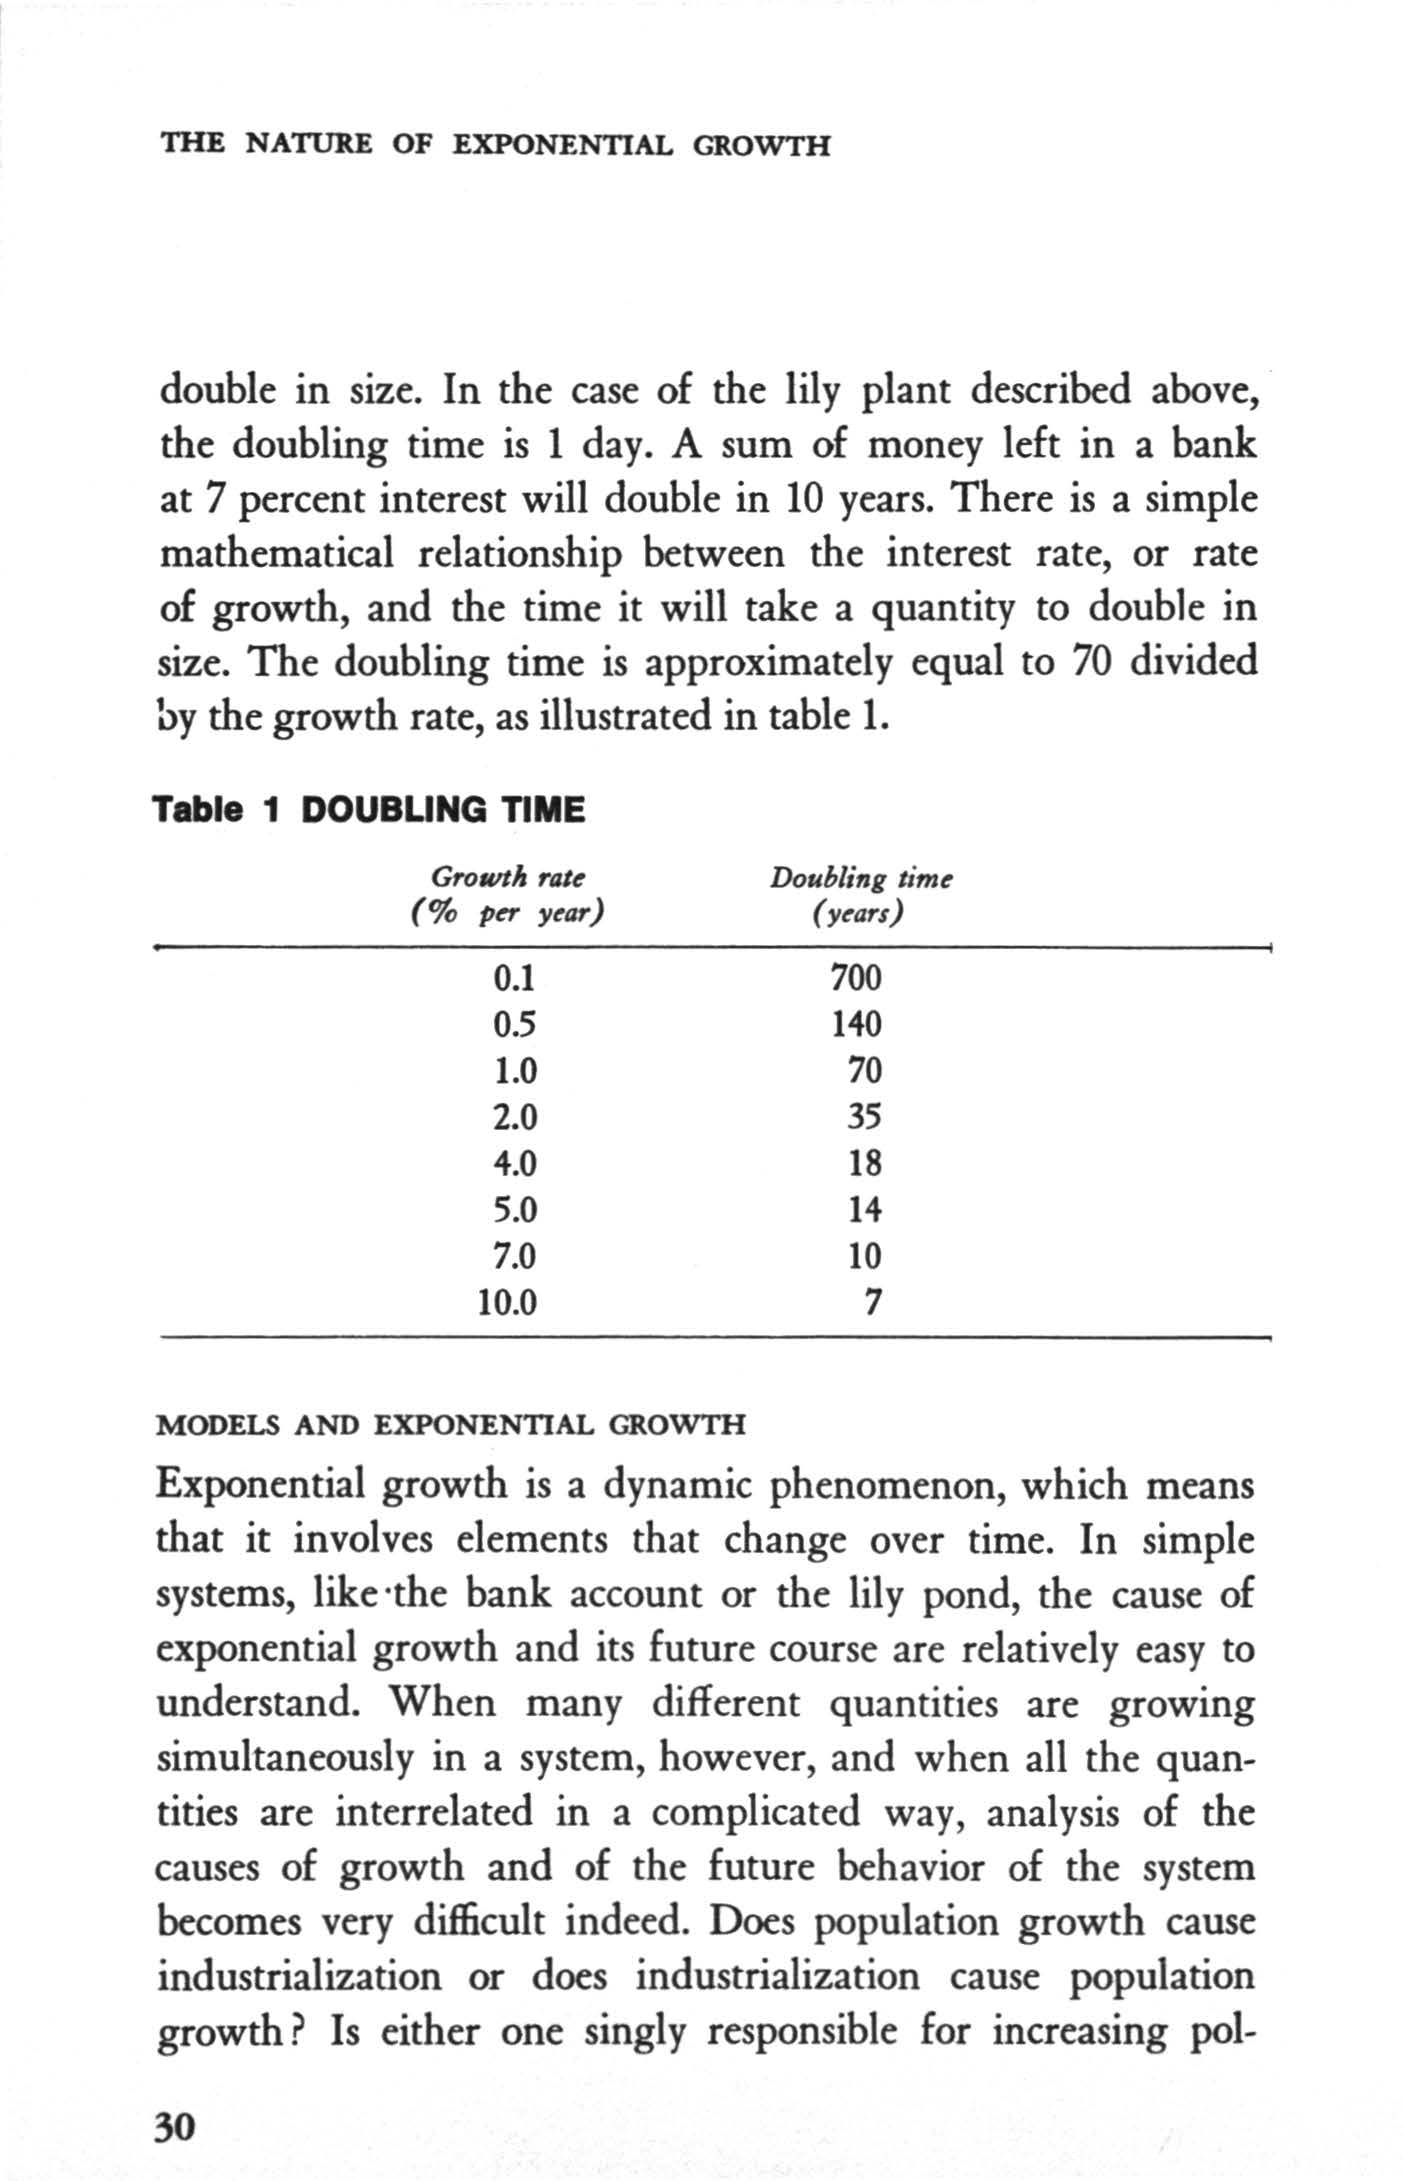 THE NATURE OF EXPONENTAL GROWTH double in size. n the case of the lily plant described above, the doubling time is 1 day. A sum of money left in a bank at 7 percent interest will double in 10 years.